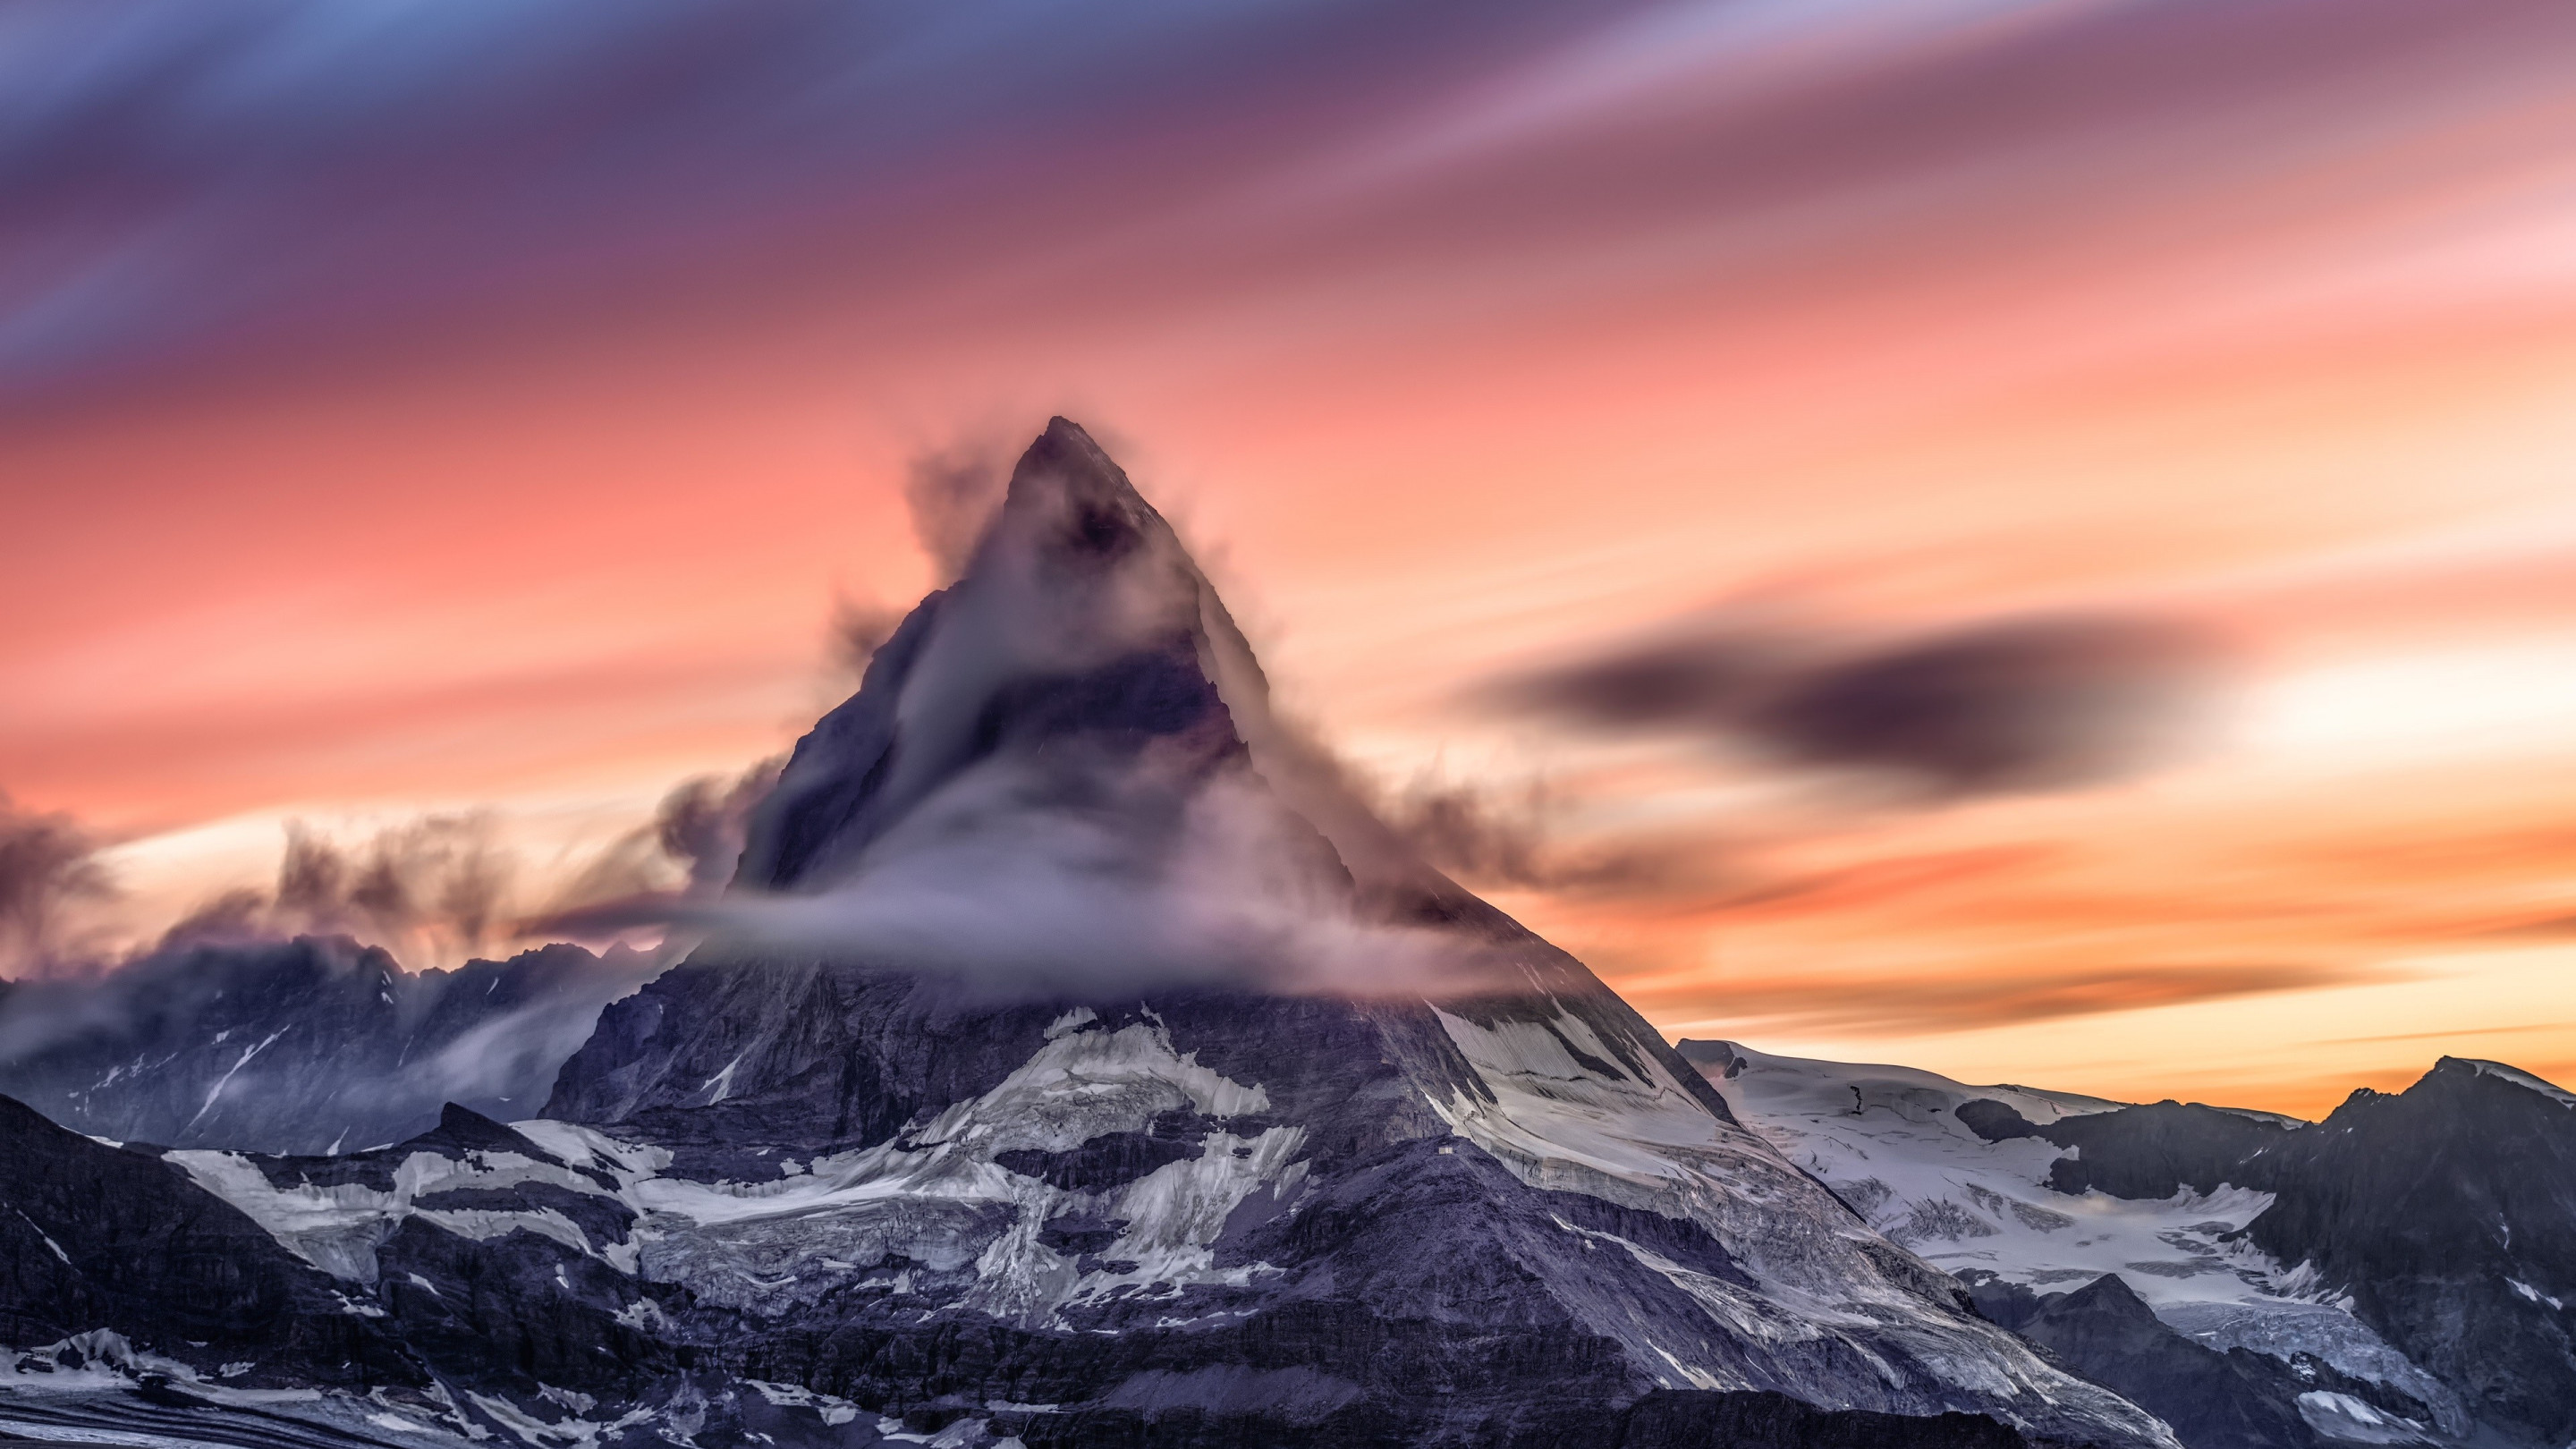 Matterhorn mountain from Alps wallpaper 2880x1620